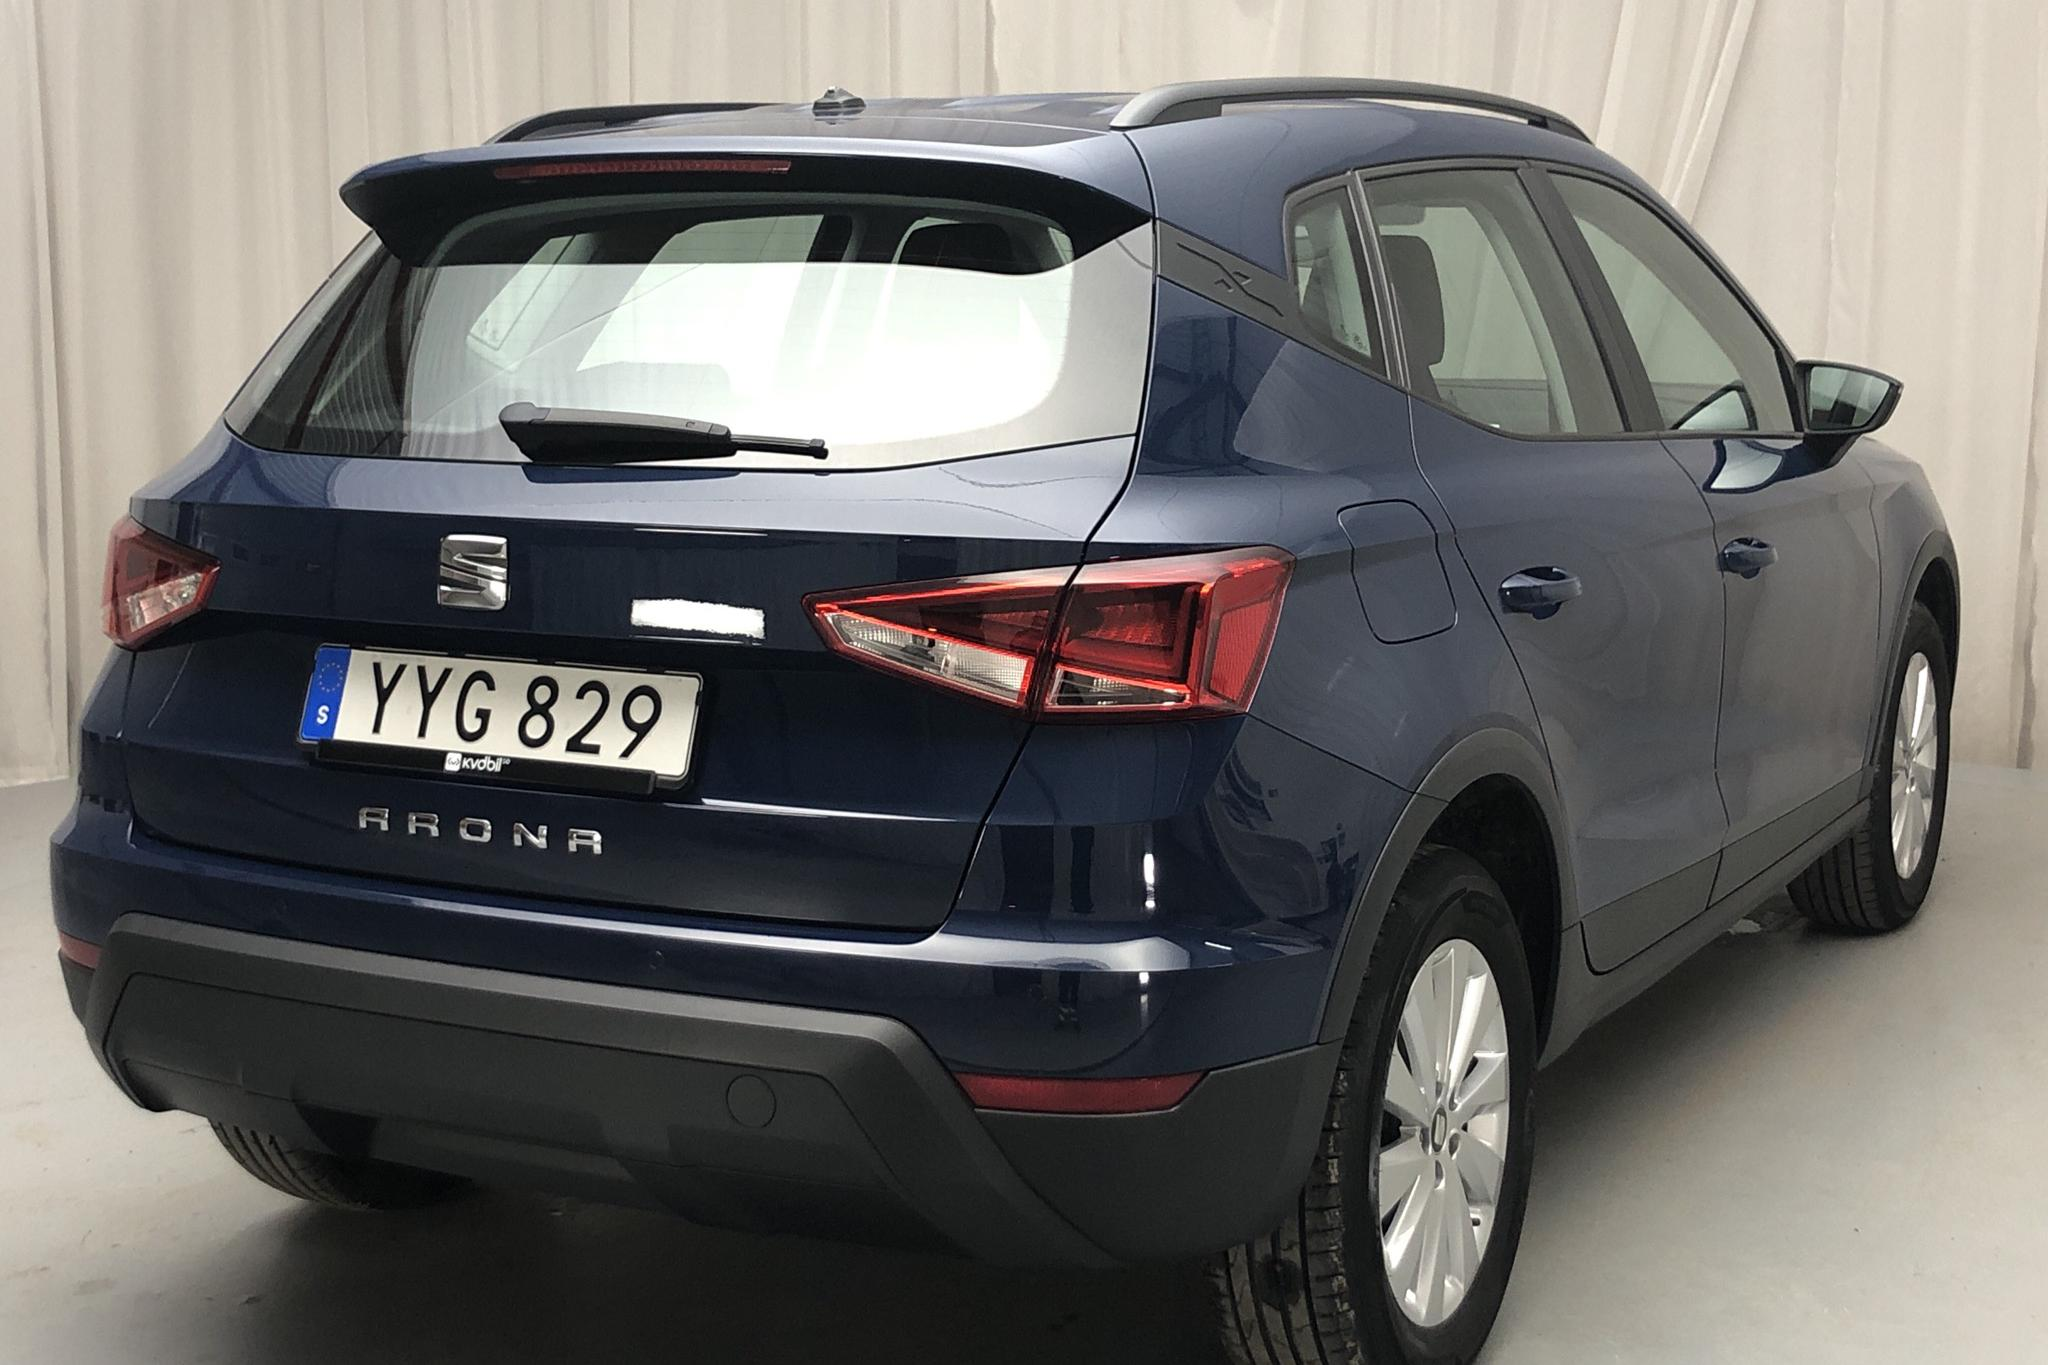 Seat Arona 1.0 TSI 5dr (95hk) - 25 500 km - Manual - blue - 2018